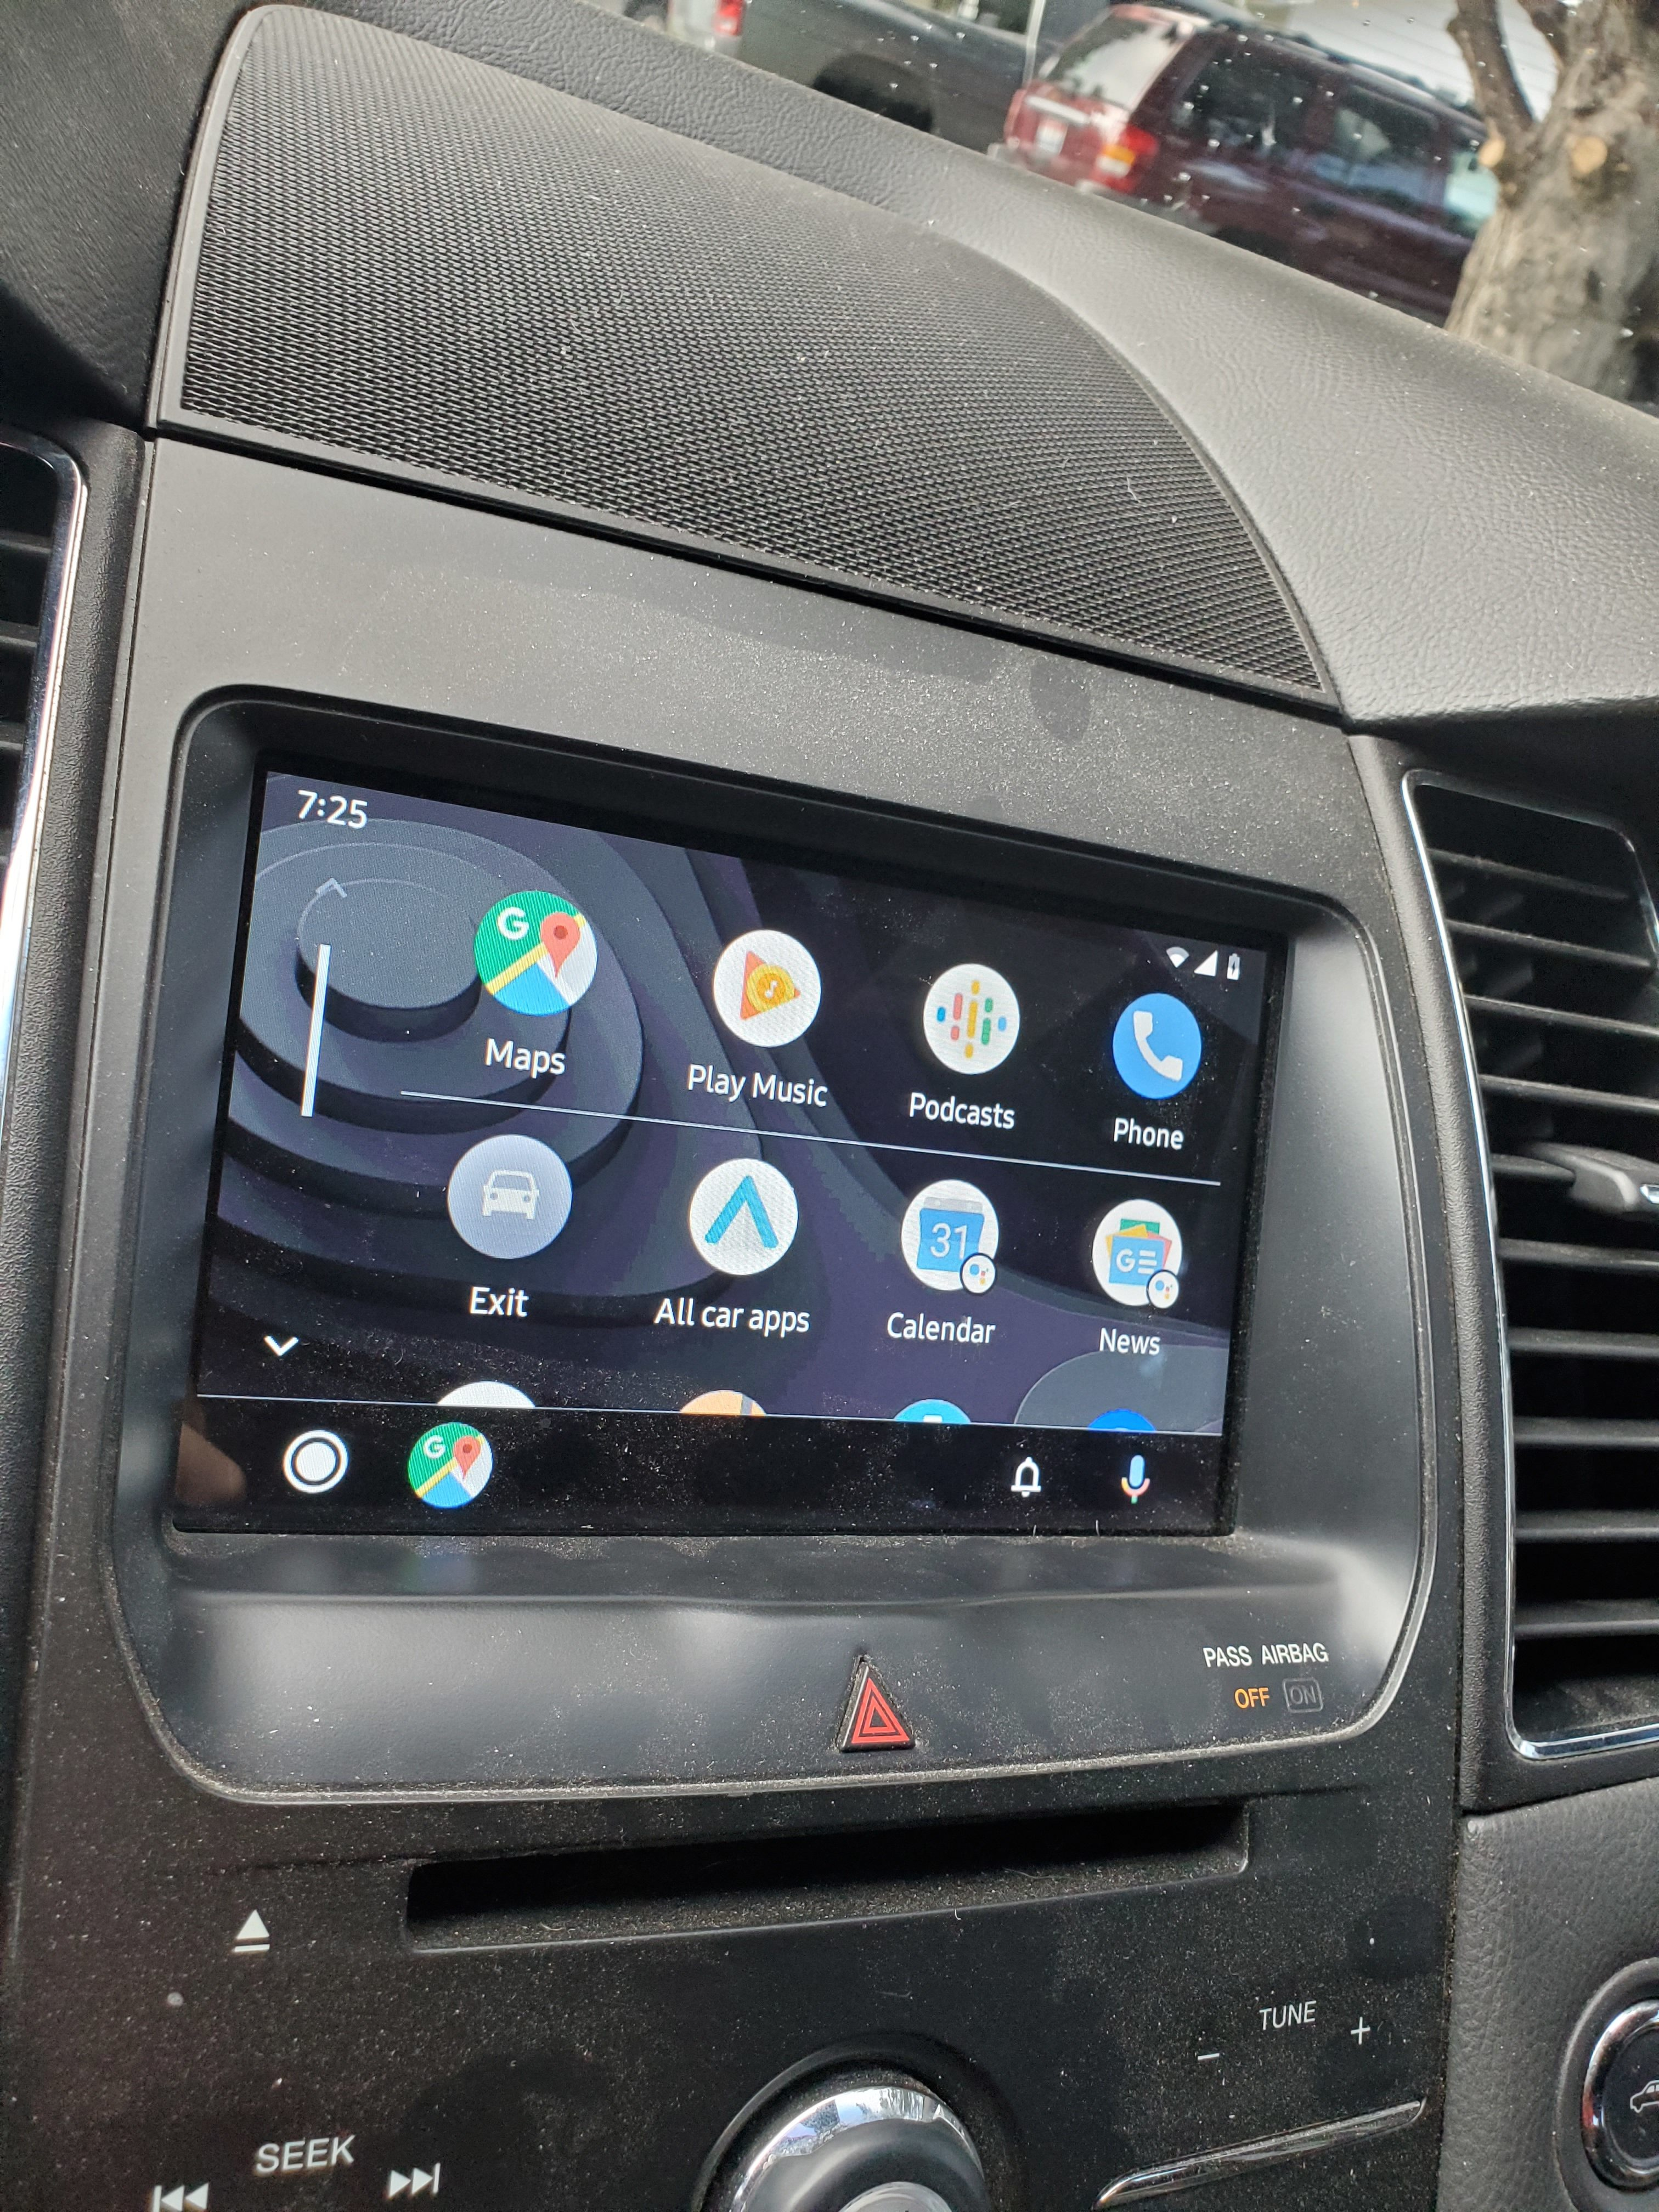 Update: Official announcement] Android Auto redesign is now